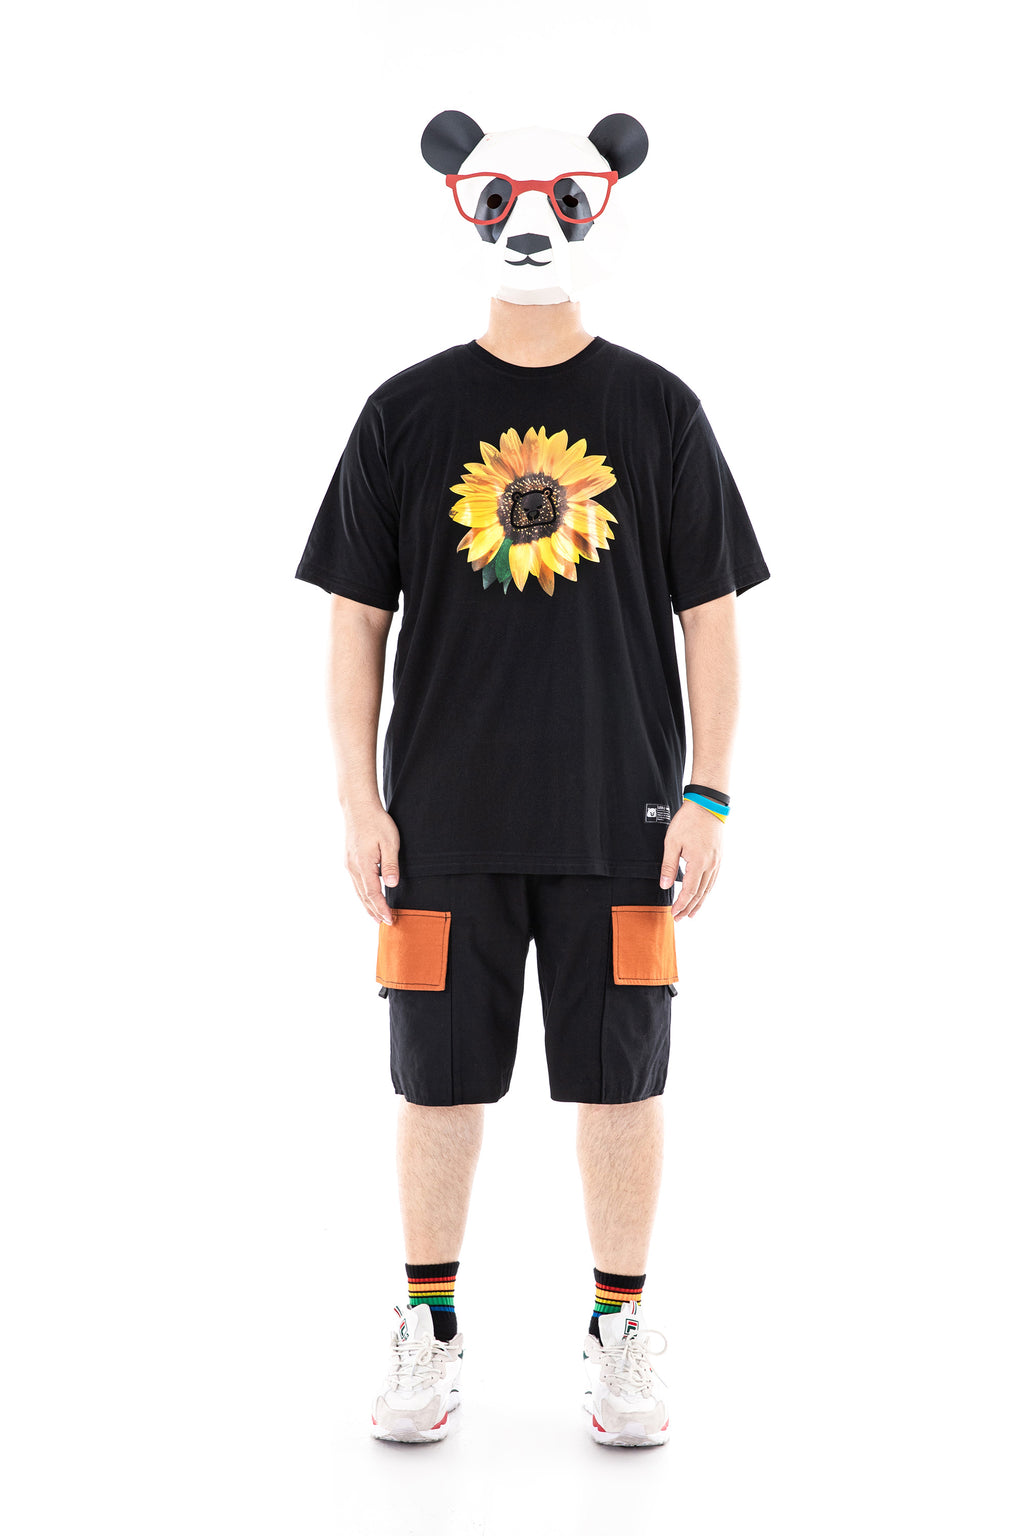 Sunflower Print T-Shirt - 02JT3155